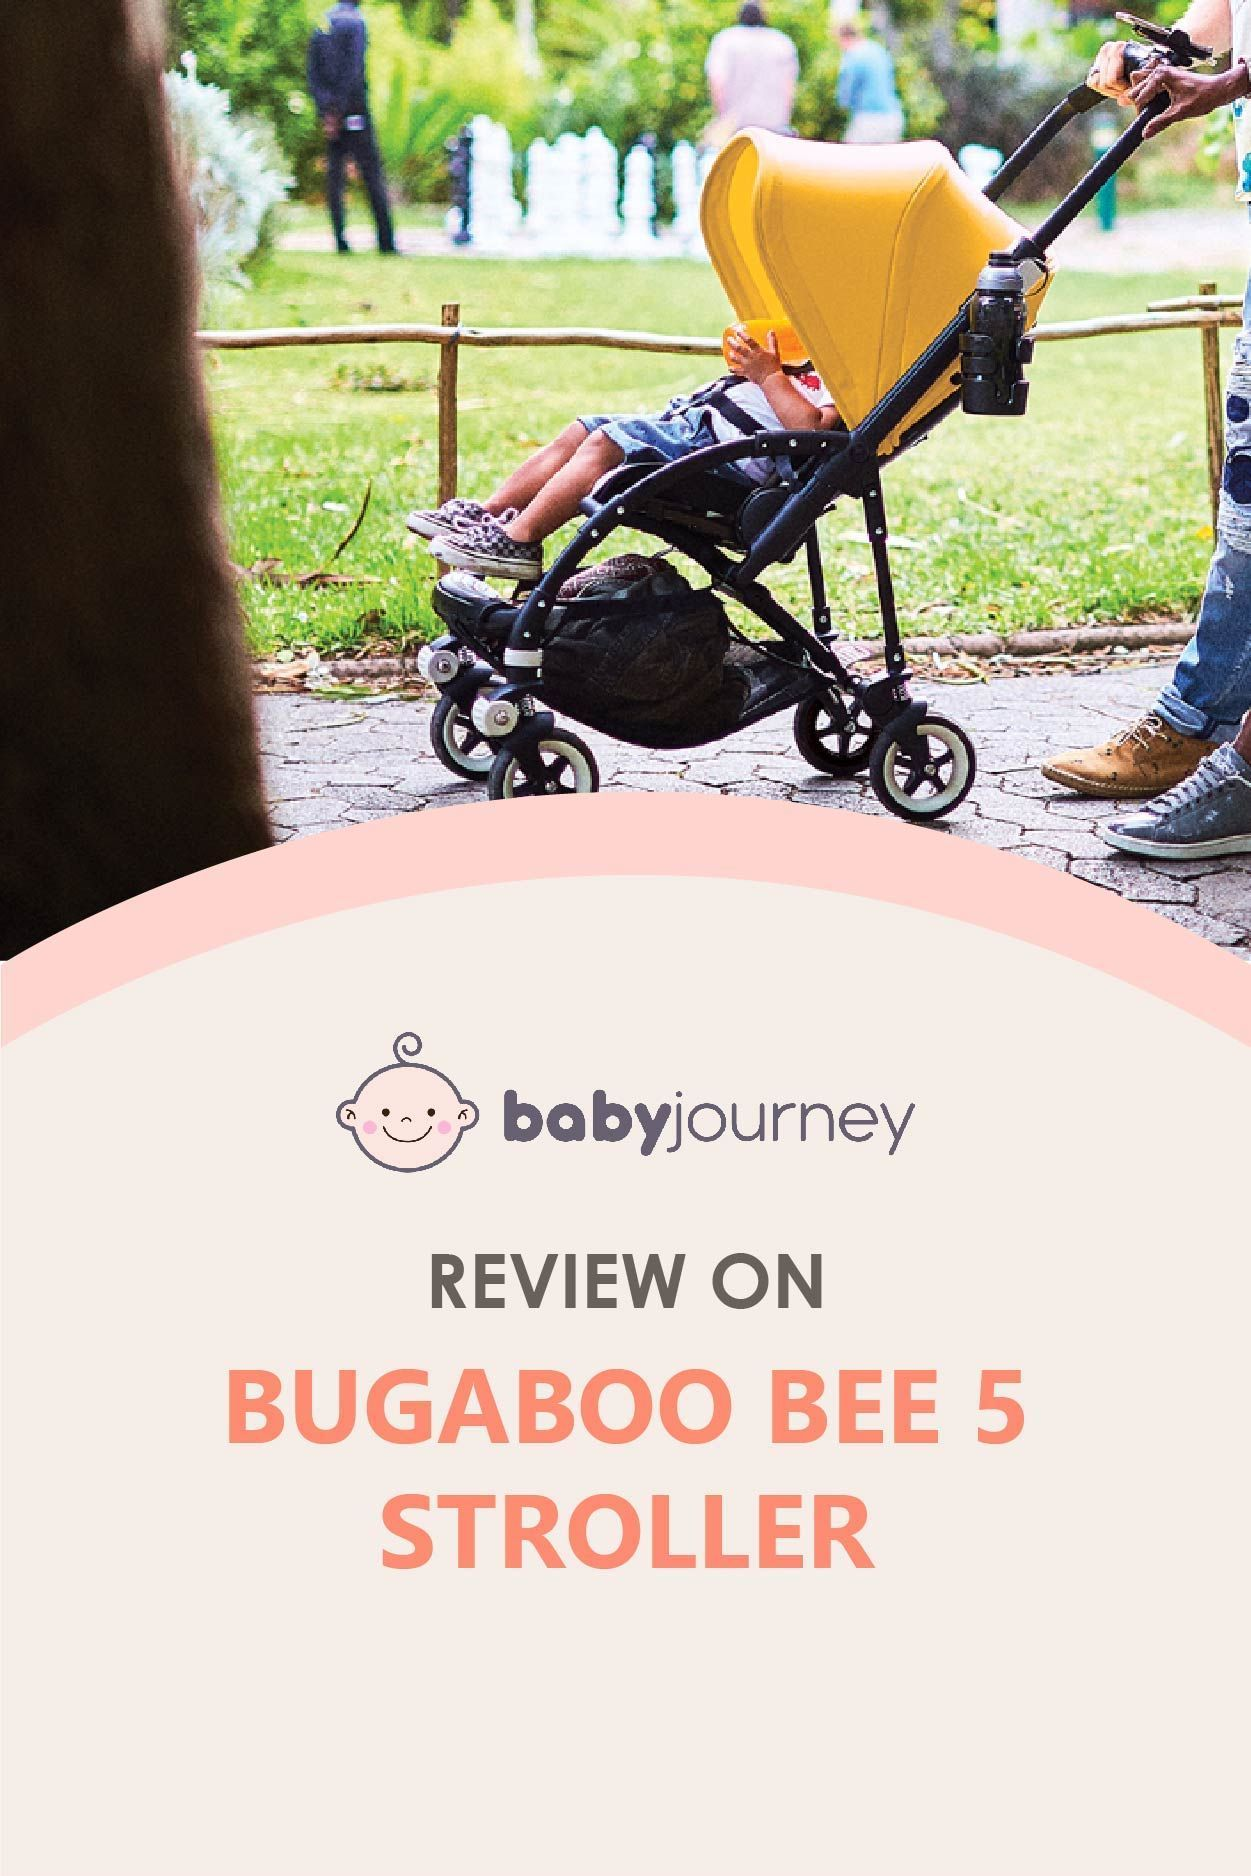 12+ Bugaboo bee 5 stroller review ideas